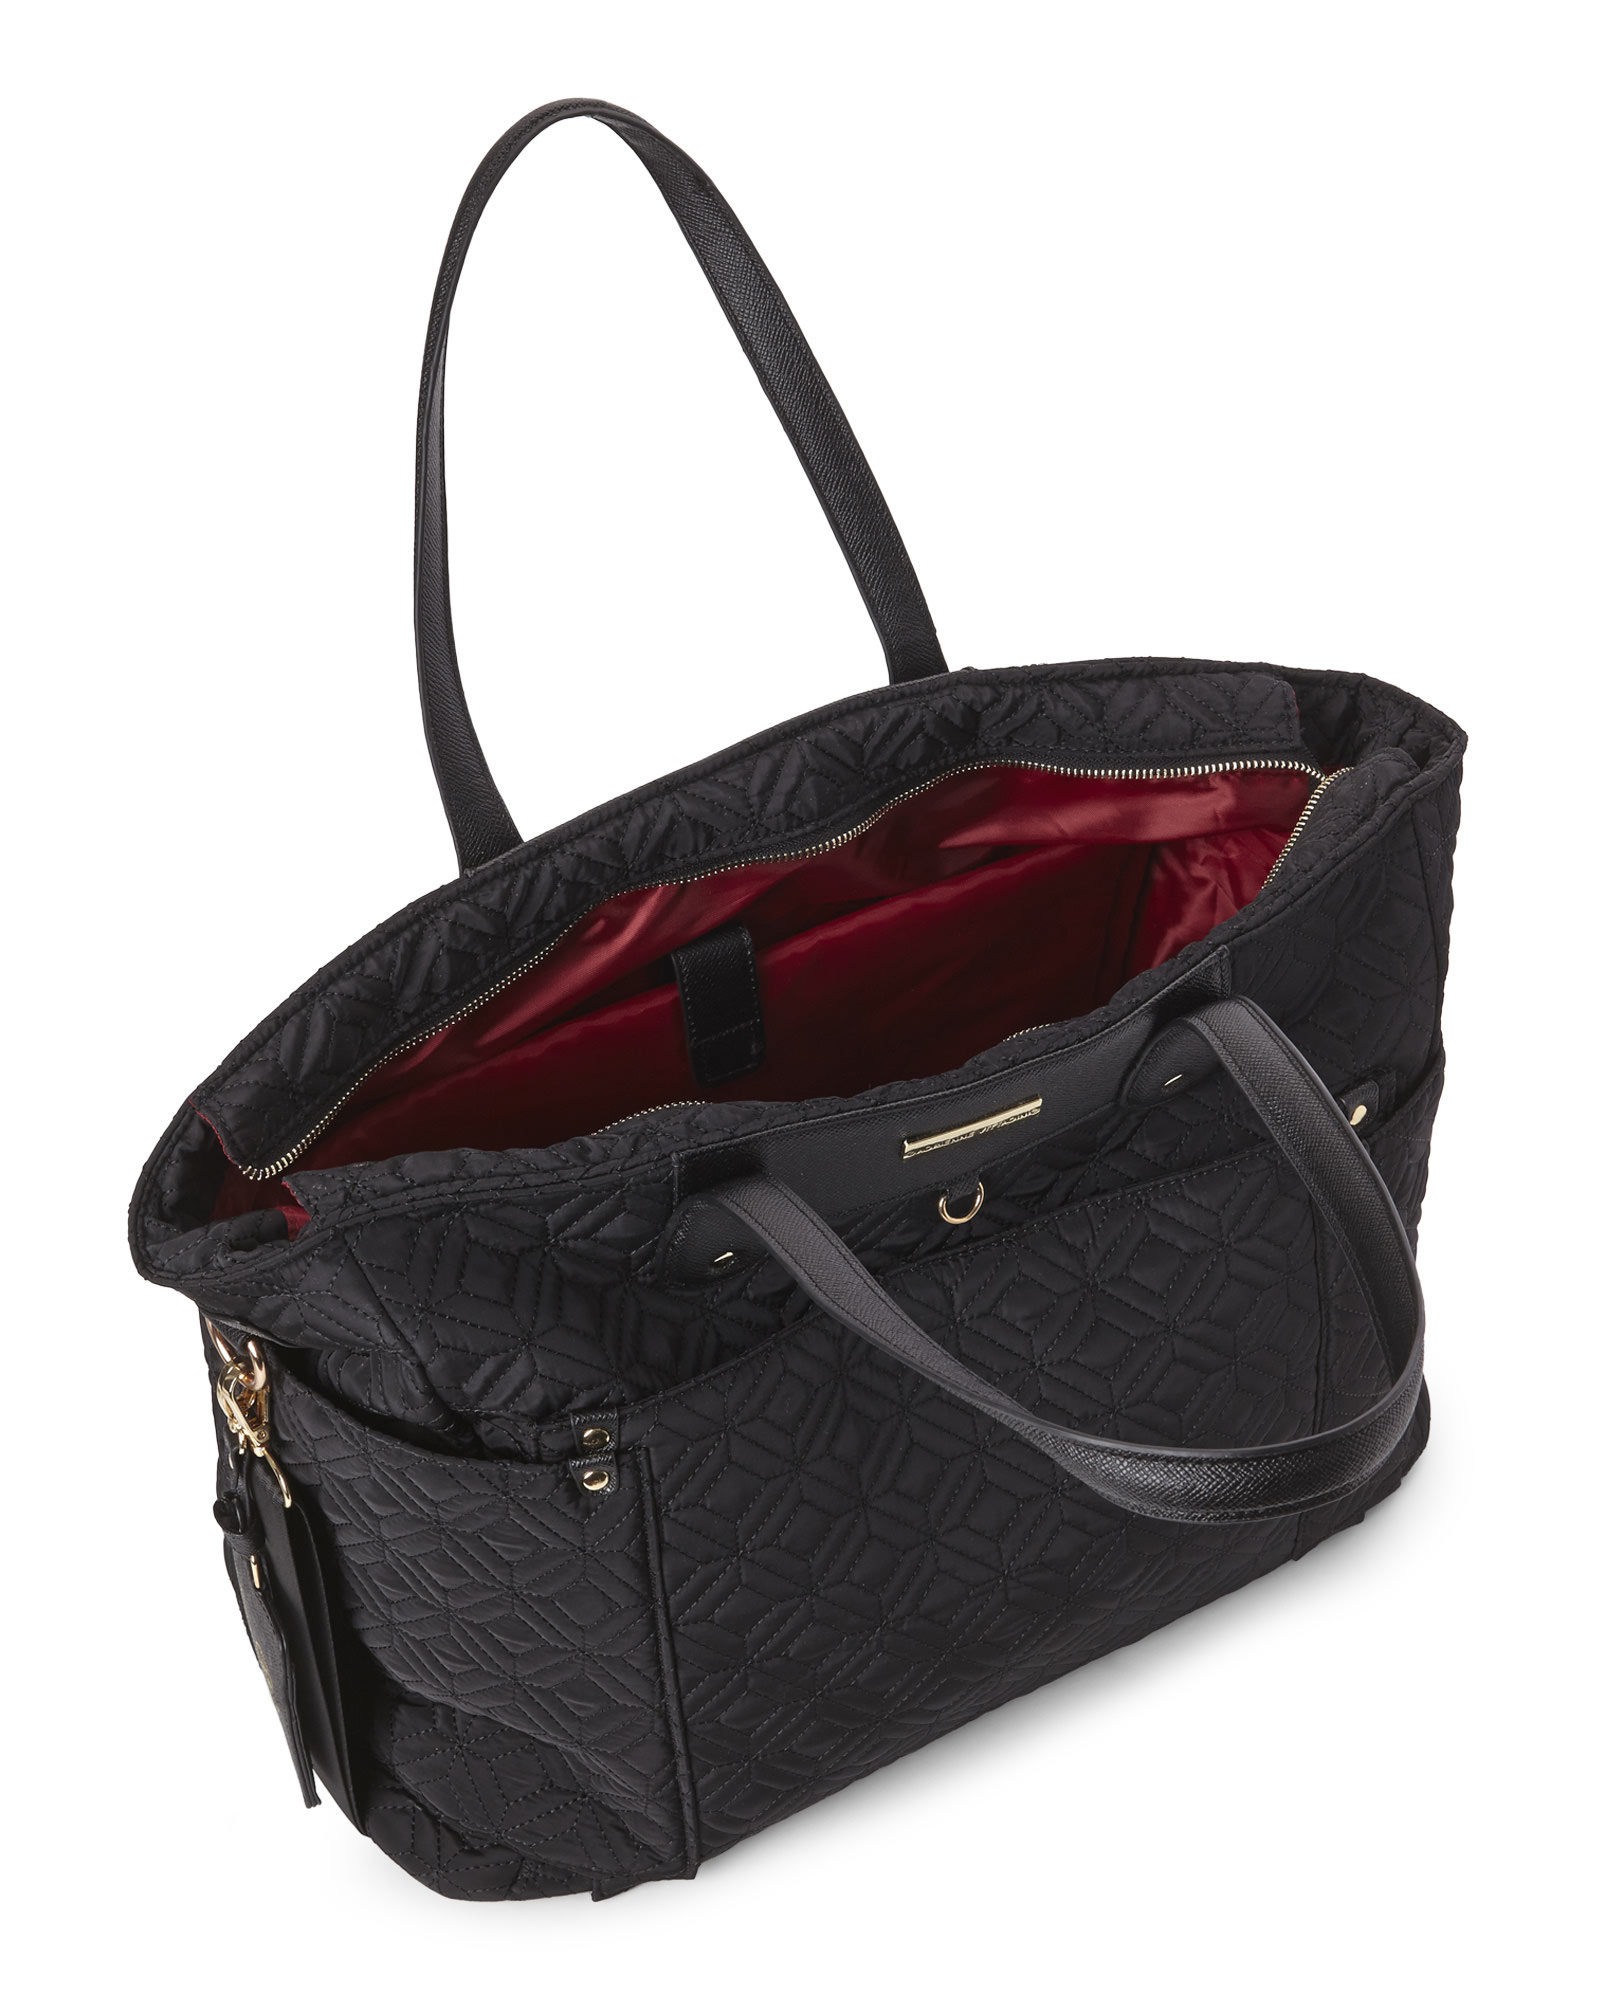 Adrienne Vittadini Black Quilted Nylon Tote In Black Lyst